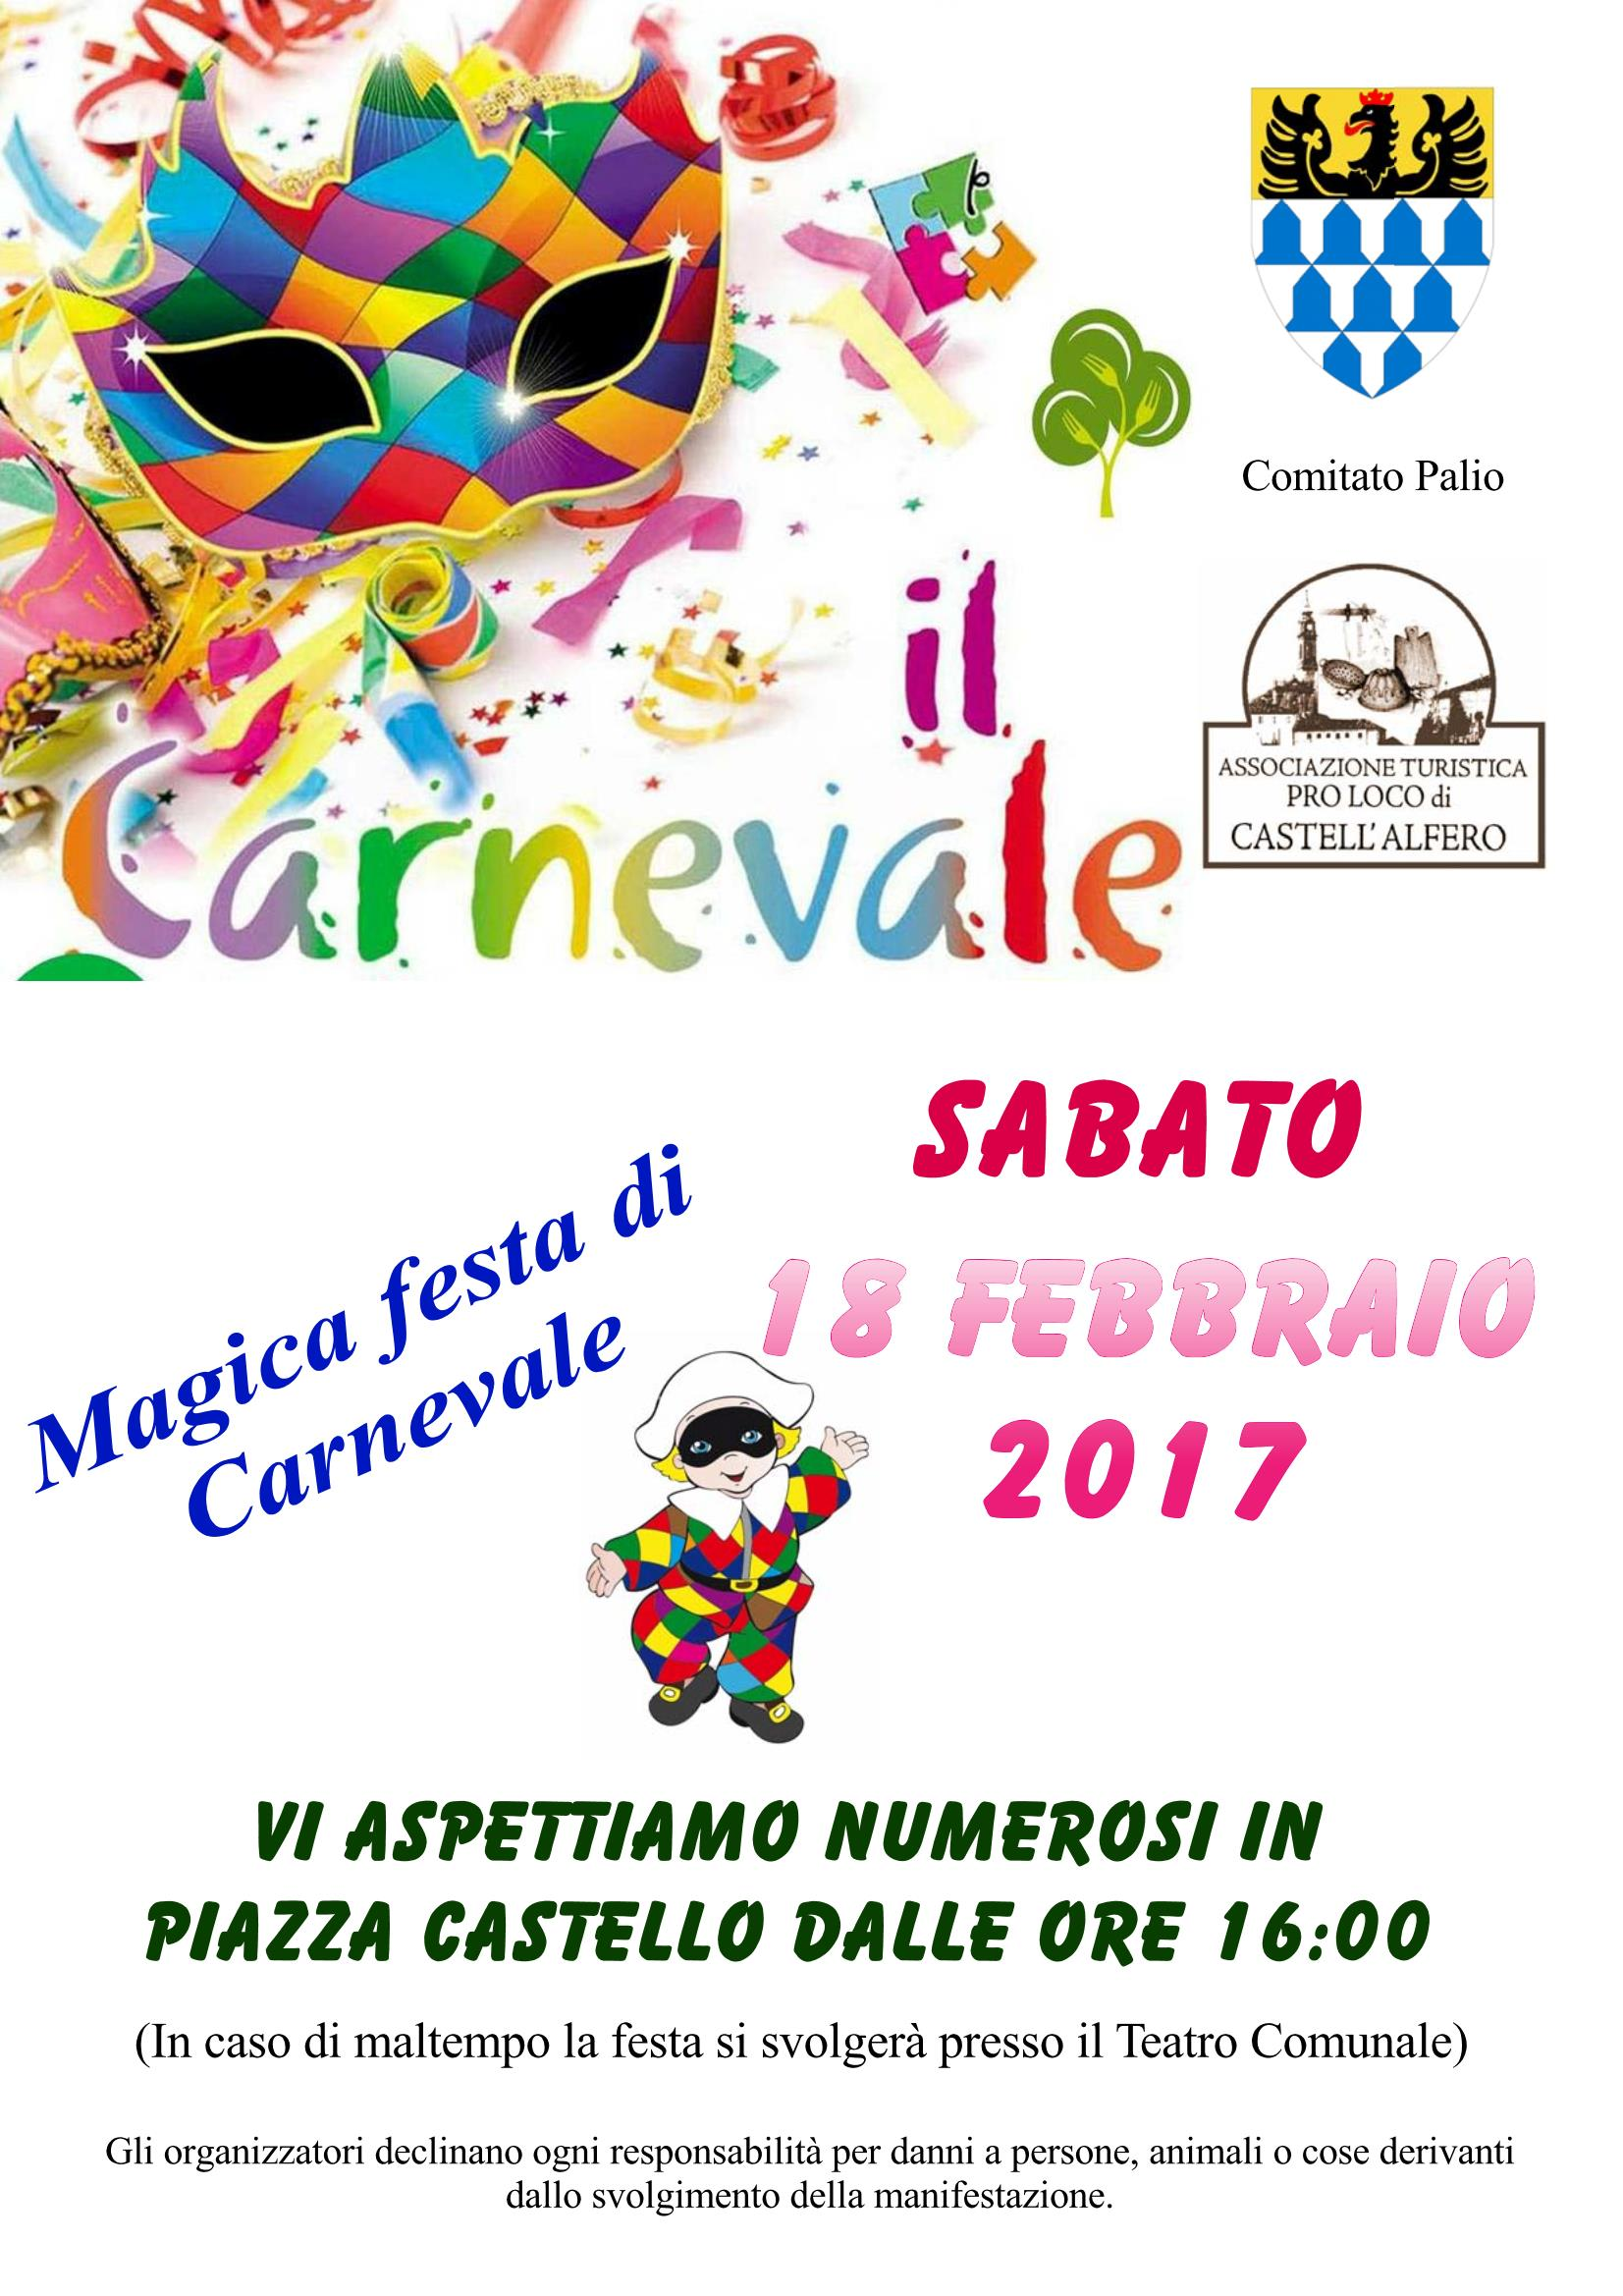 Carnevale 2017 Page 1